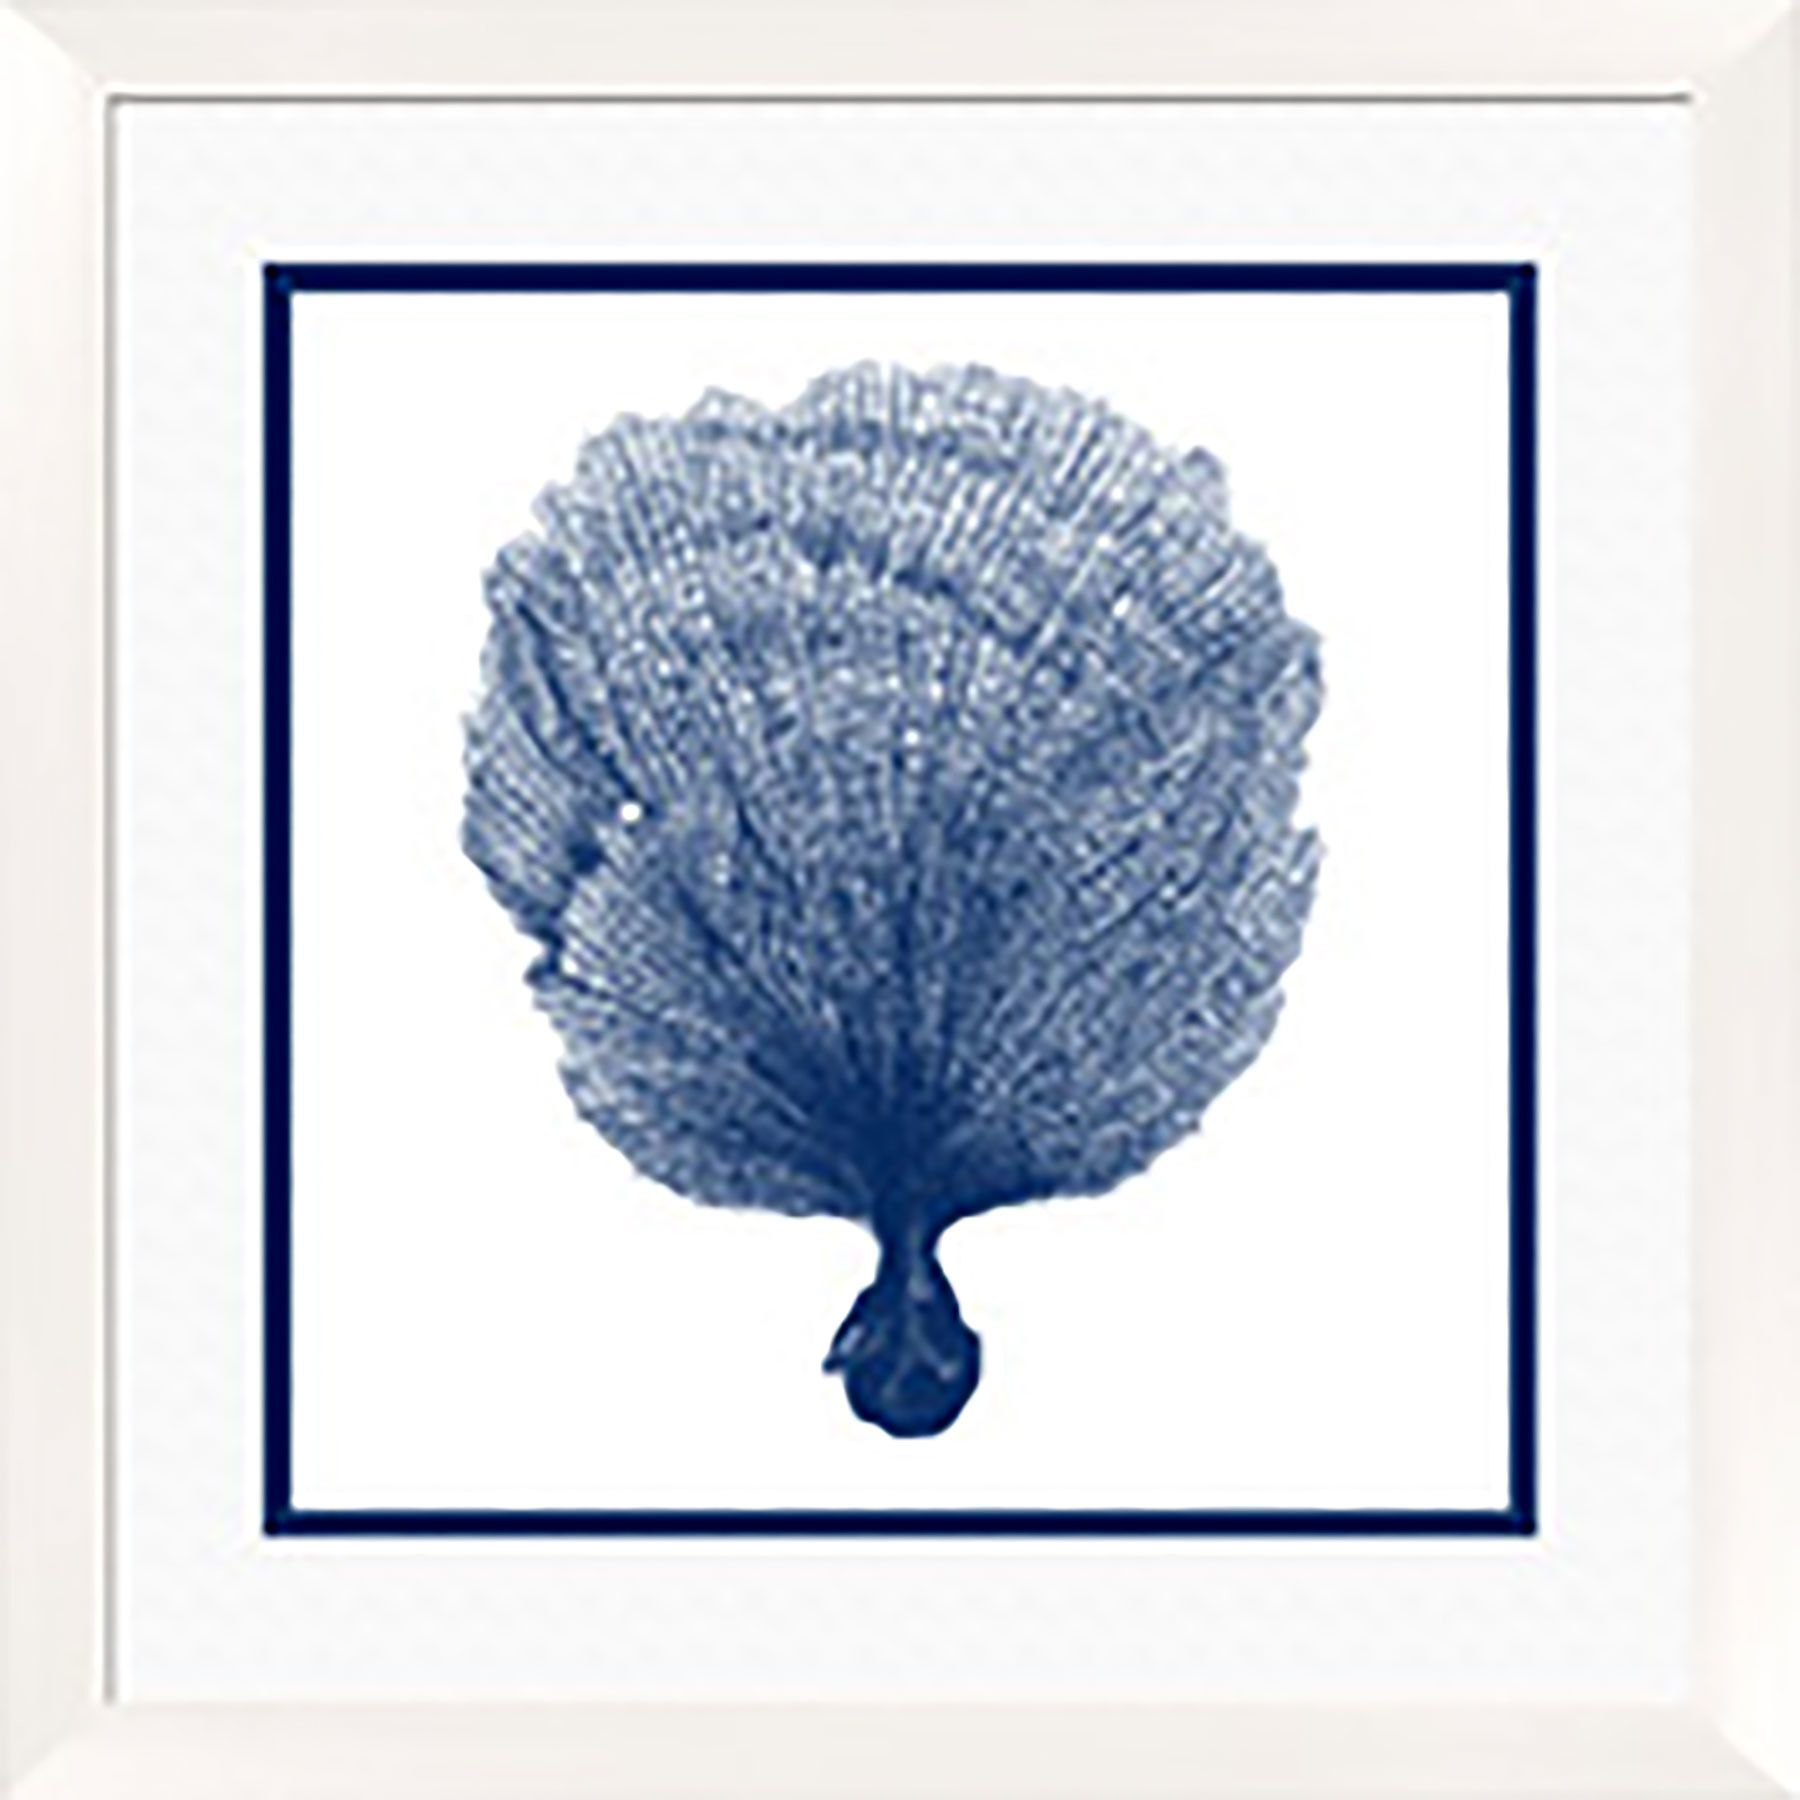 Coral i framed graphic art graphics art and blue